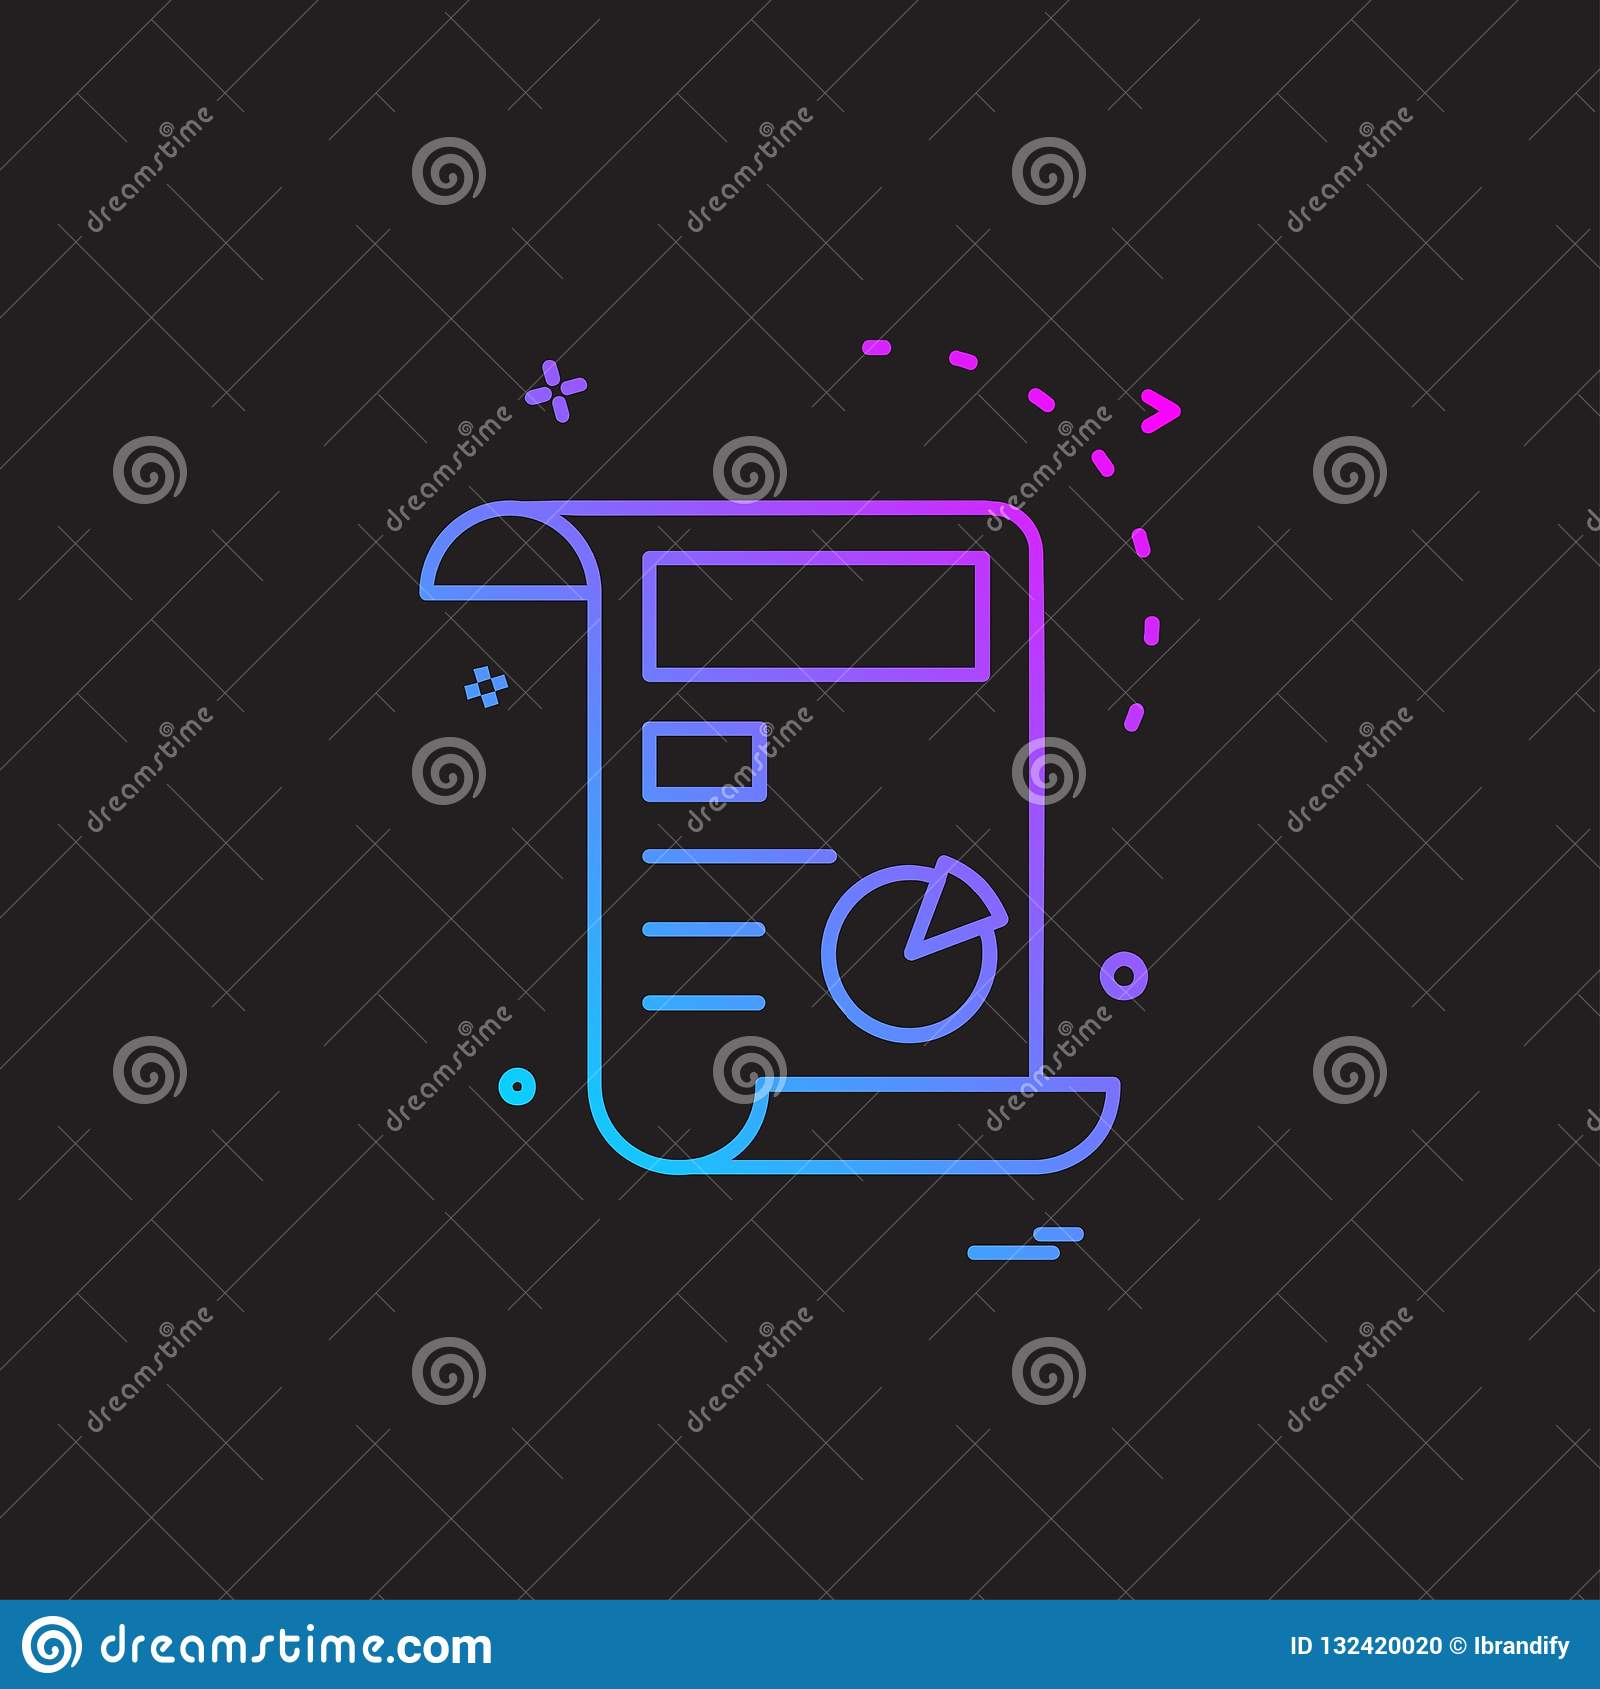 Invoice icon design vector stock vector  Illustration of